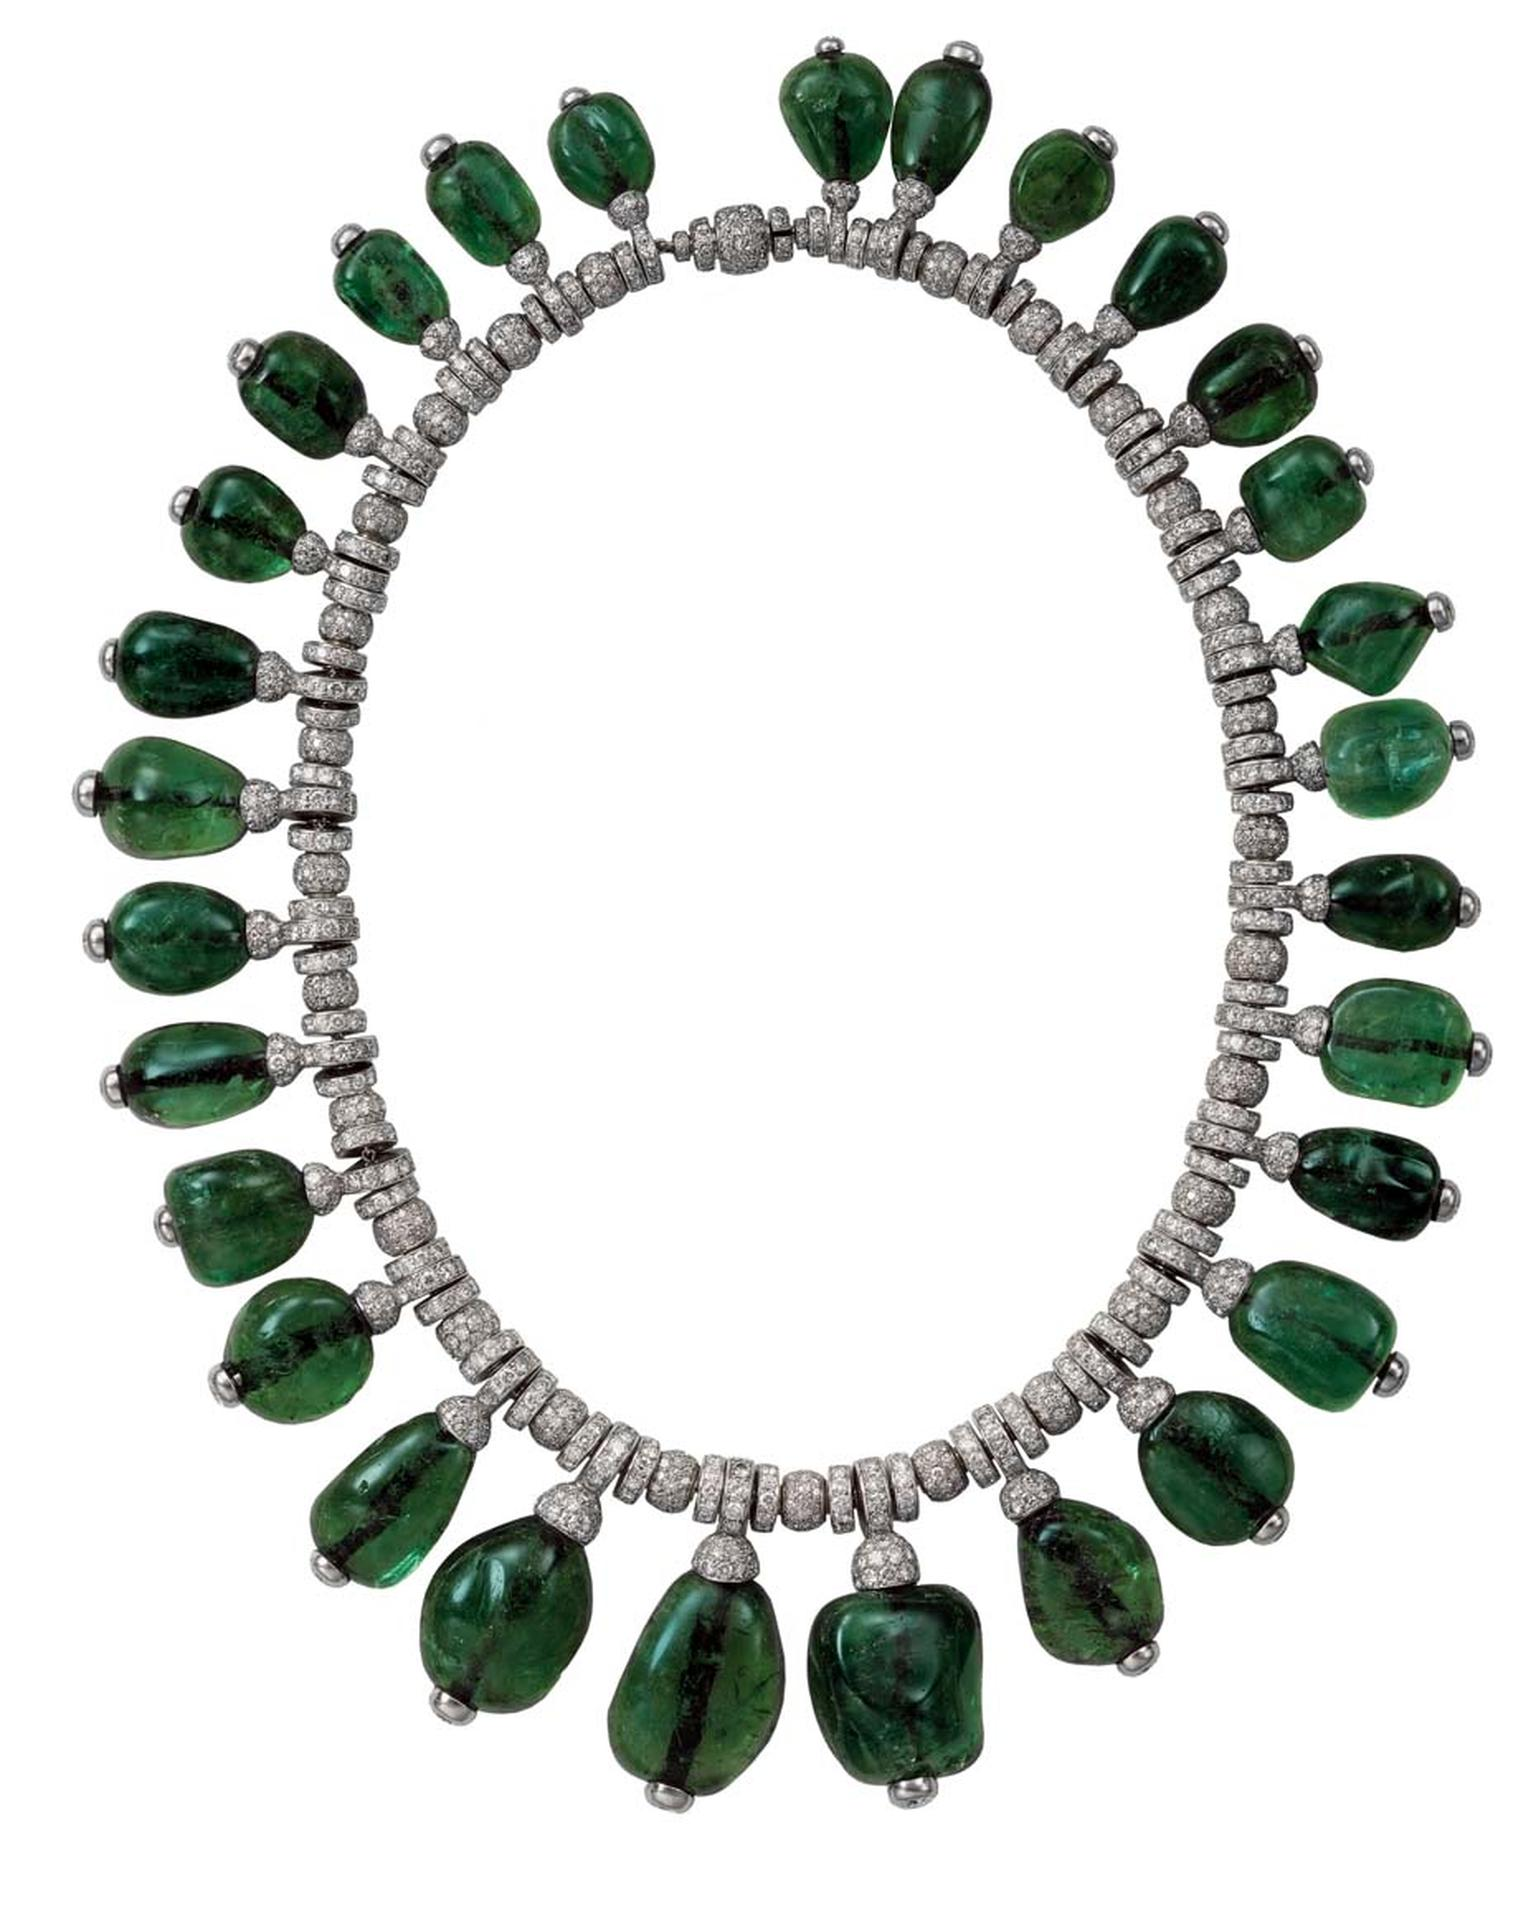 A Cartier cabochon emerald and diamond necklace, commissioned by Merle Oberon in 1938 - part of the Denver Art Museum's Brilliant: Cartier in the 20th Century exhibition, which runs until 15 March 2015. © Cartier.